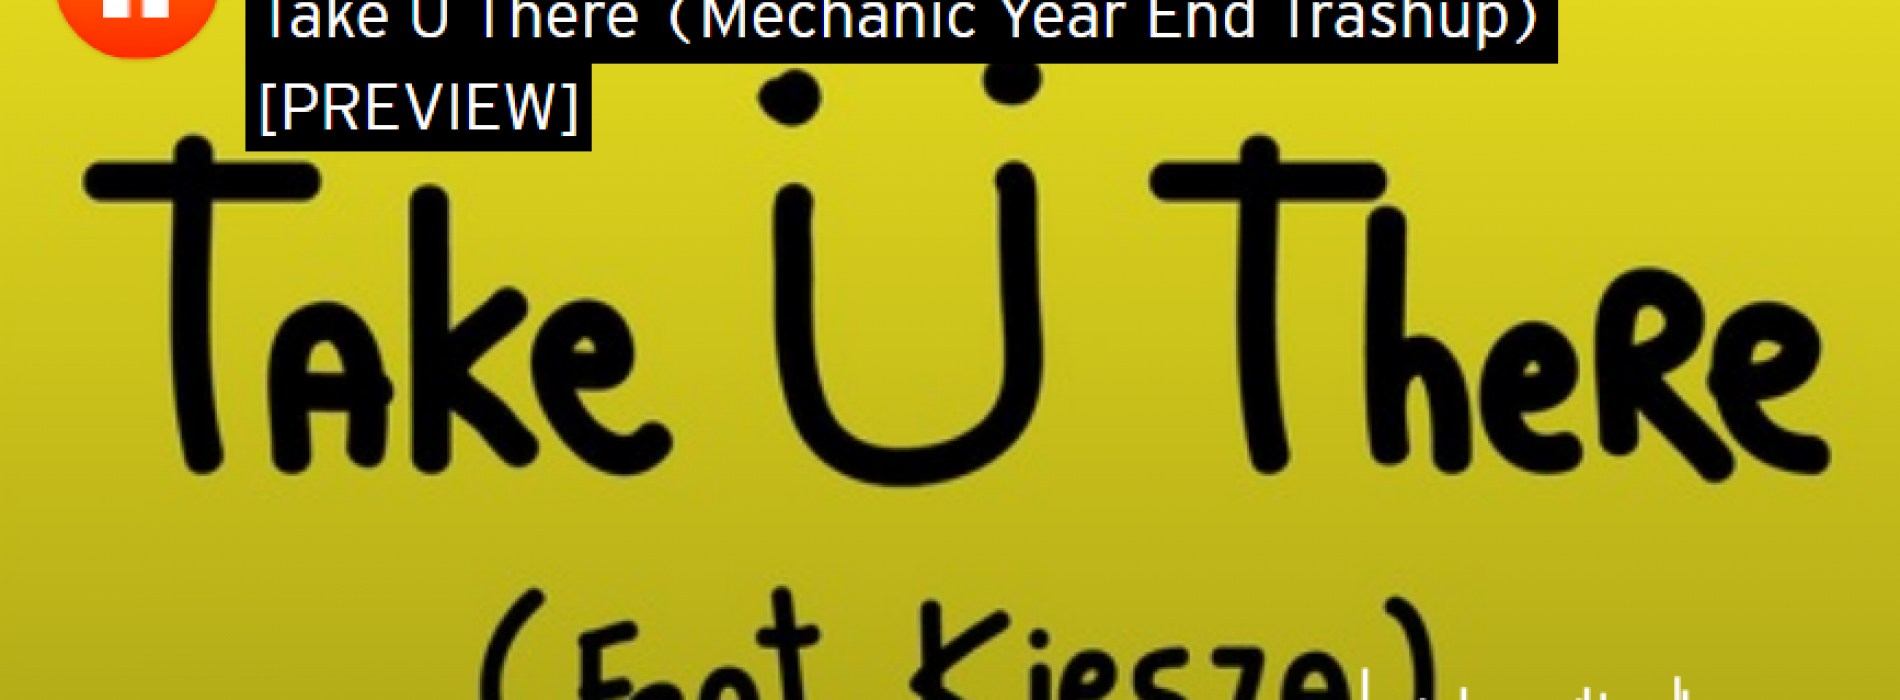 Electro Mechanic – Take Ü There (Mechanic Year End Trashup) [PREVIEW]